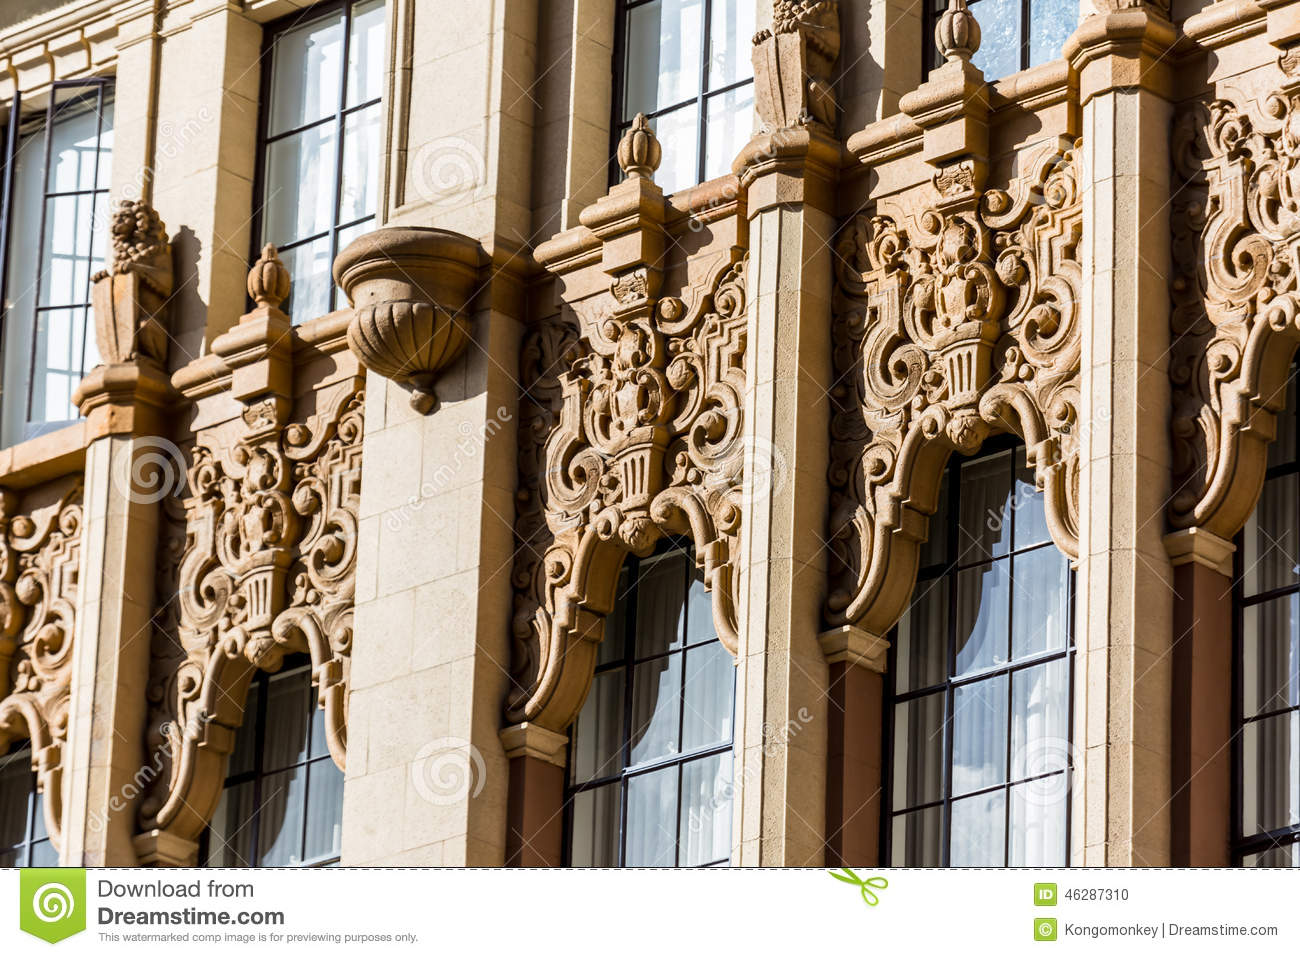 Building scroll work stock photo image 46287310 for Window scroll